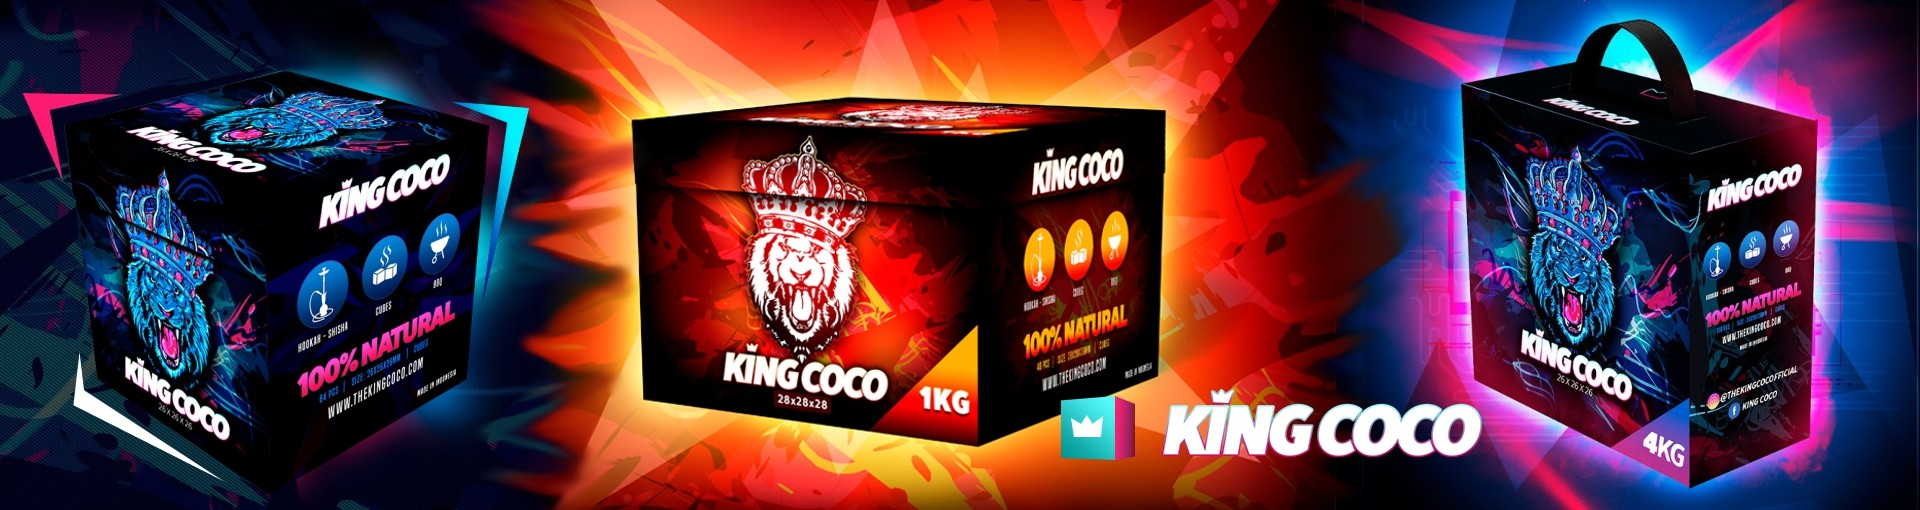 Carbón King Coco